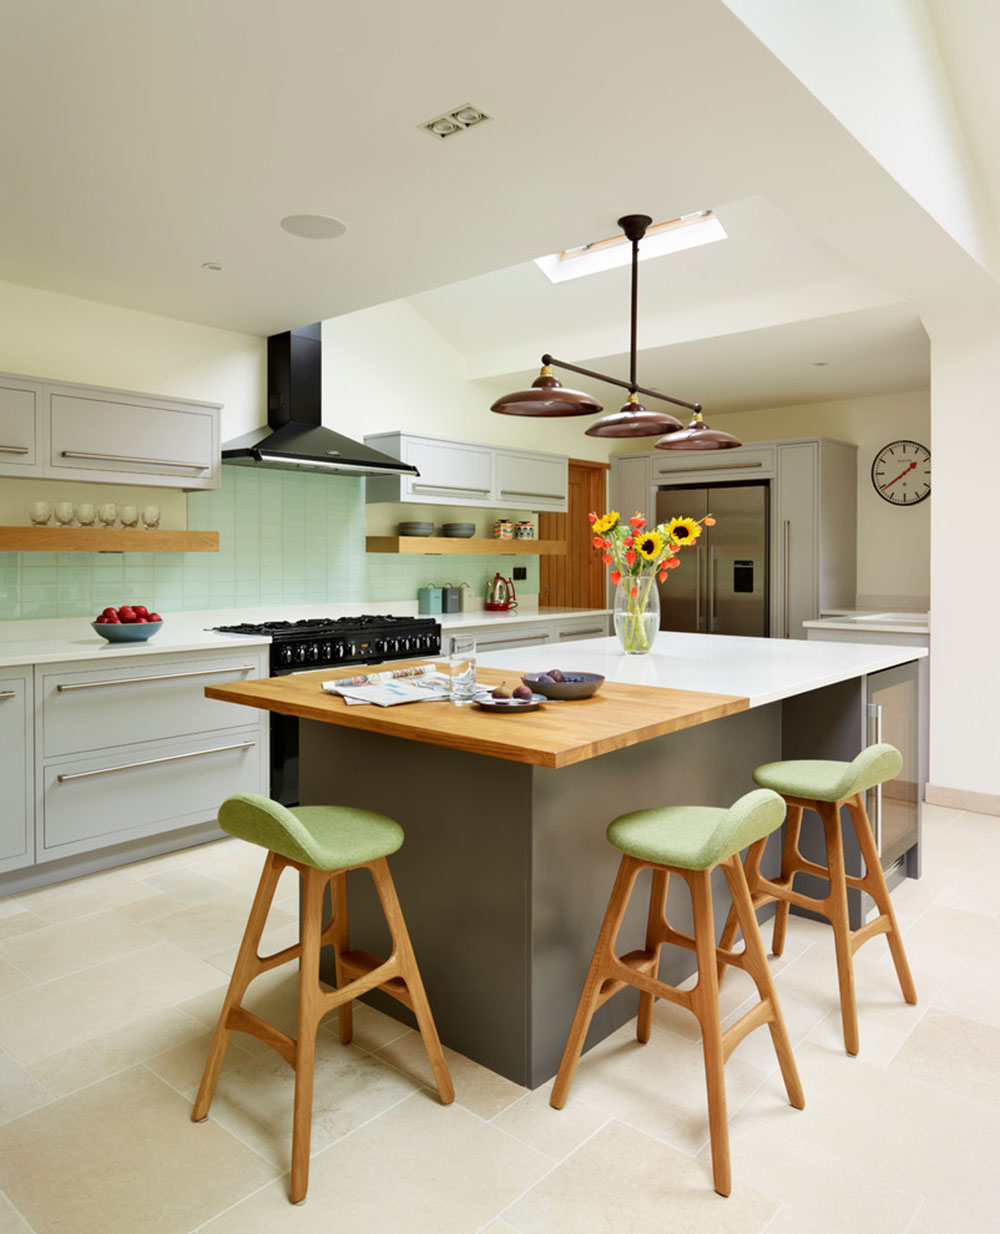 Kitchen Island Freestanding Stools